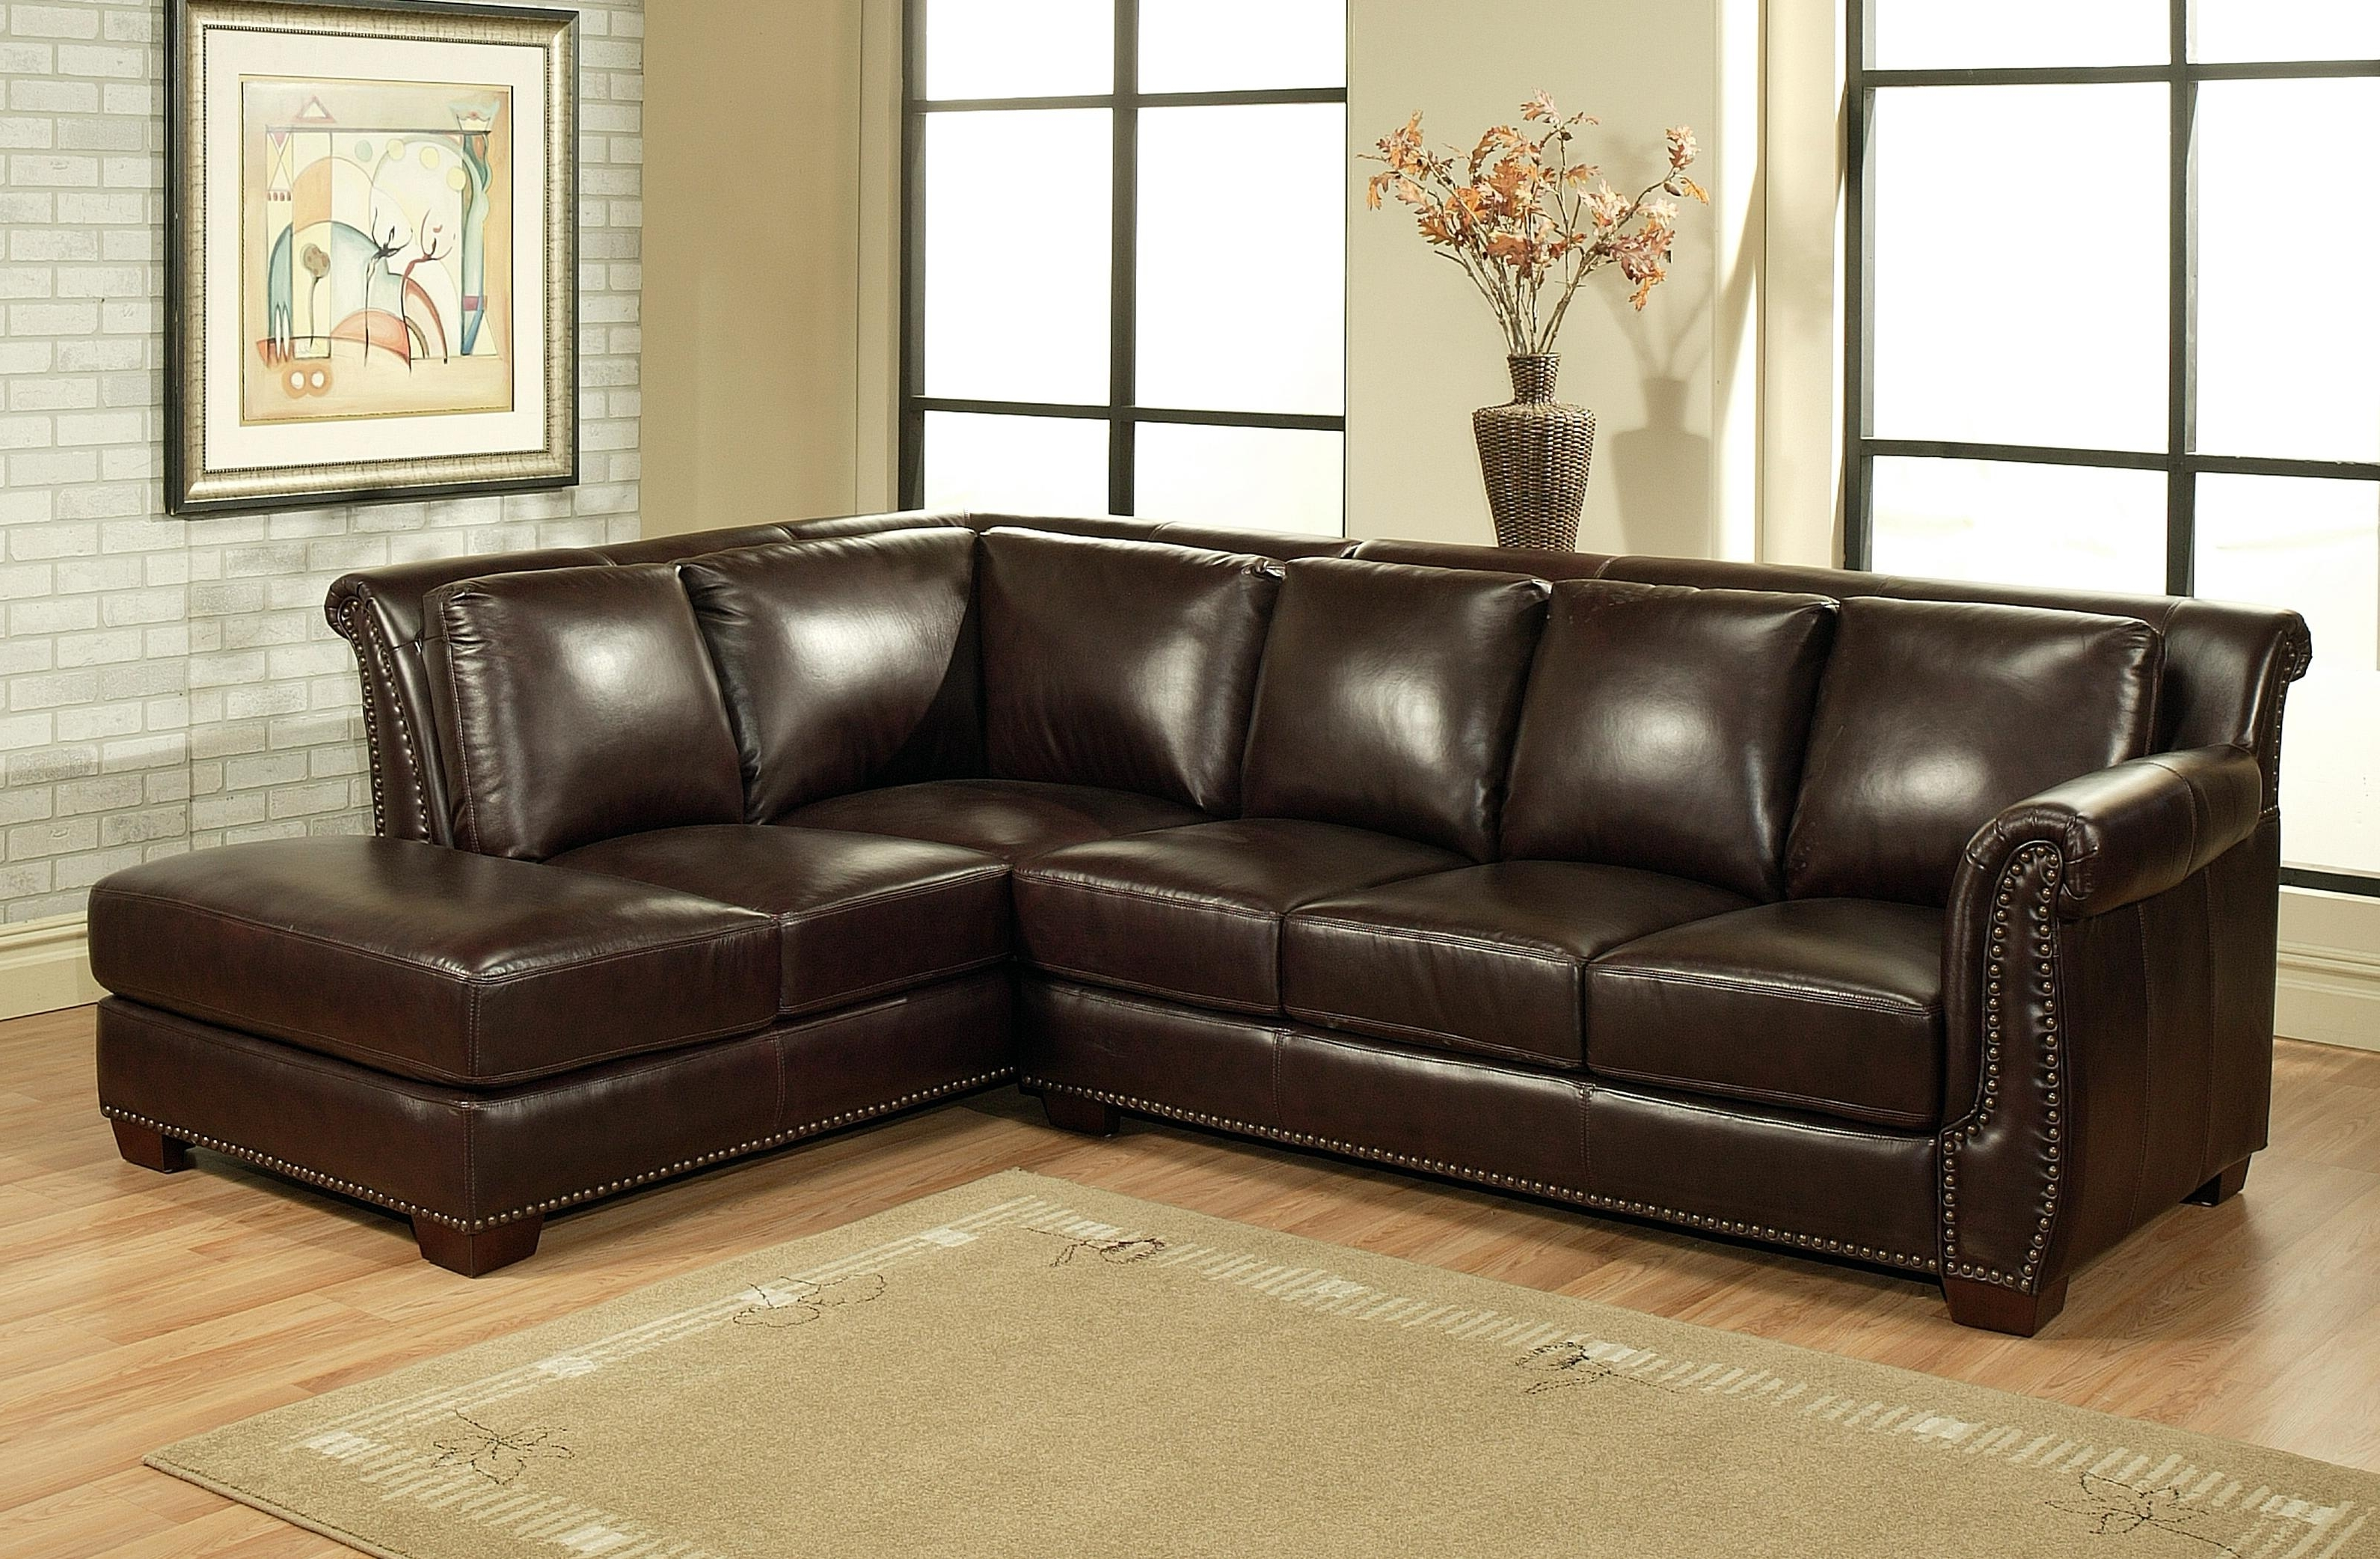 Most Popular Furniture : Sectional Sofas (View 18 of 20)